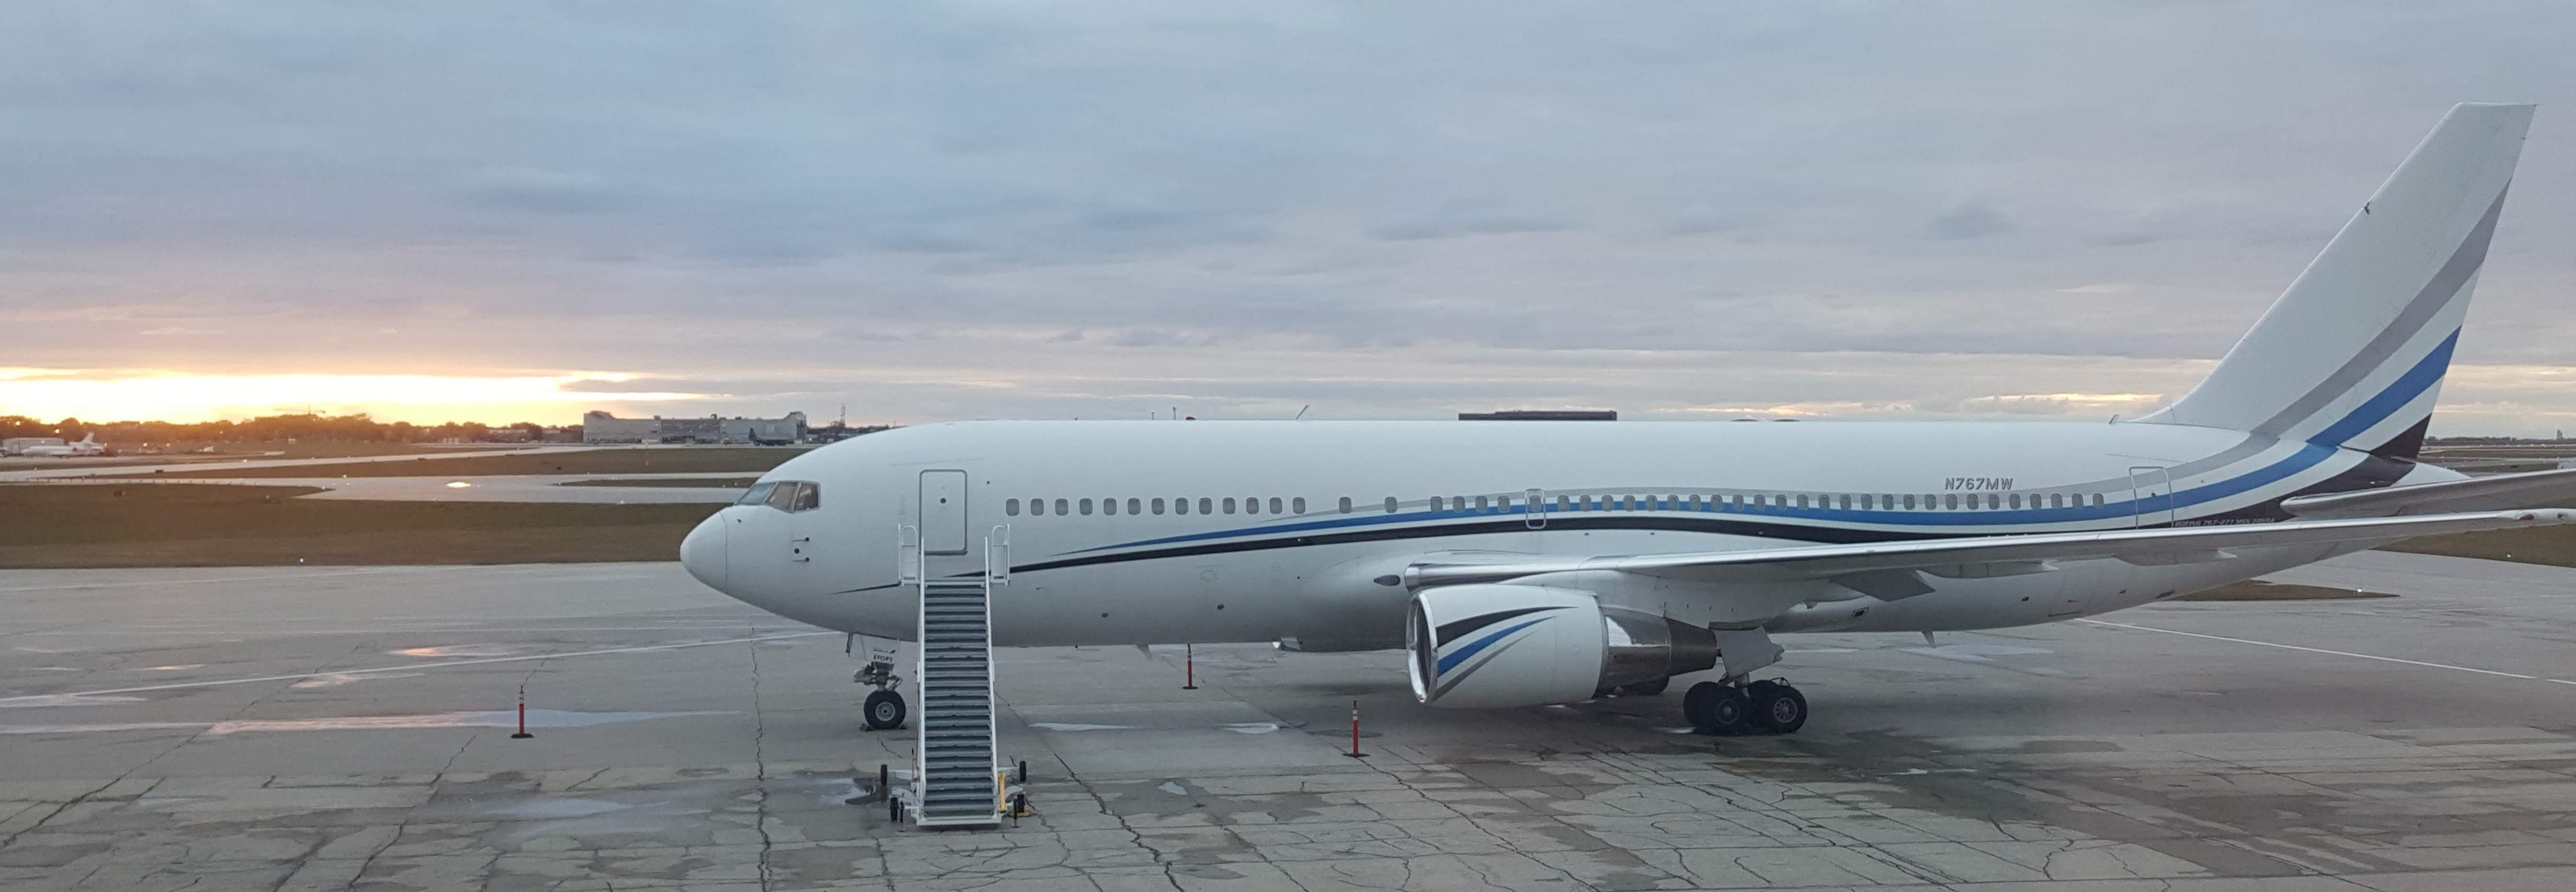 Boeing 767-200 N767MW was in Winnipeg yesterday, I assume bringing the New Jersey Devils to town for the NHL game.